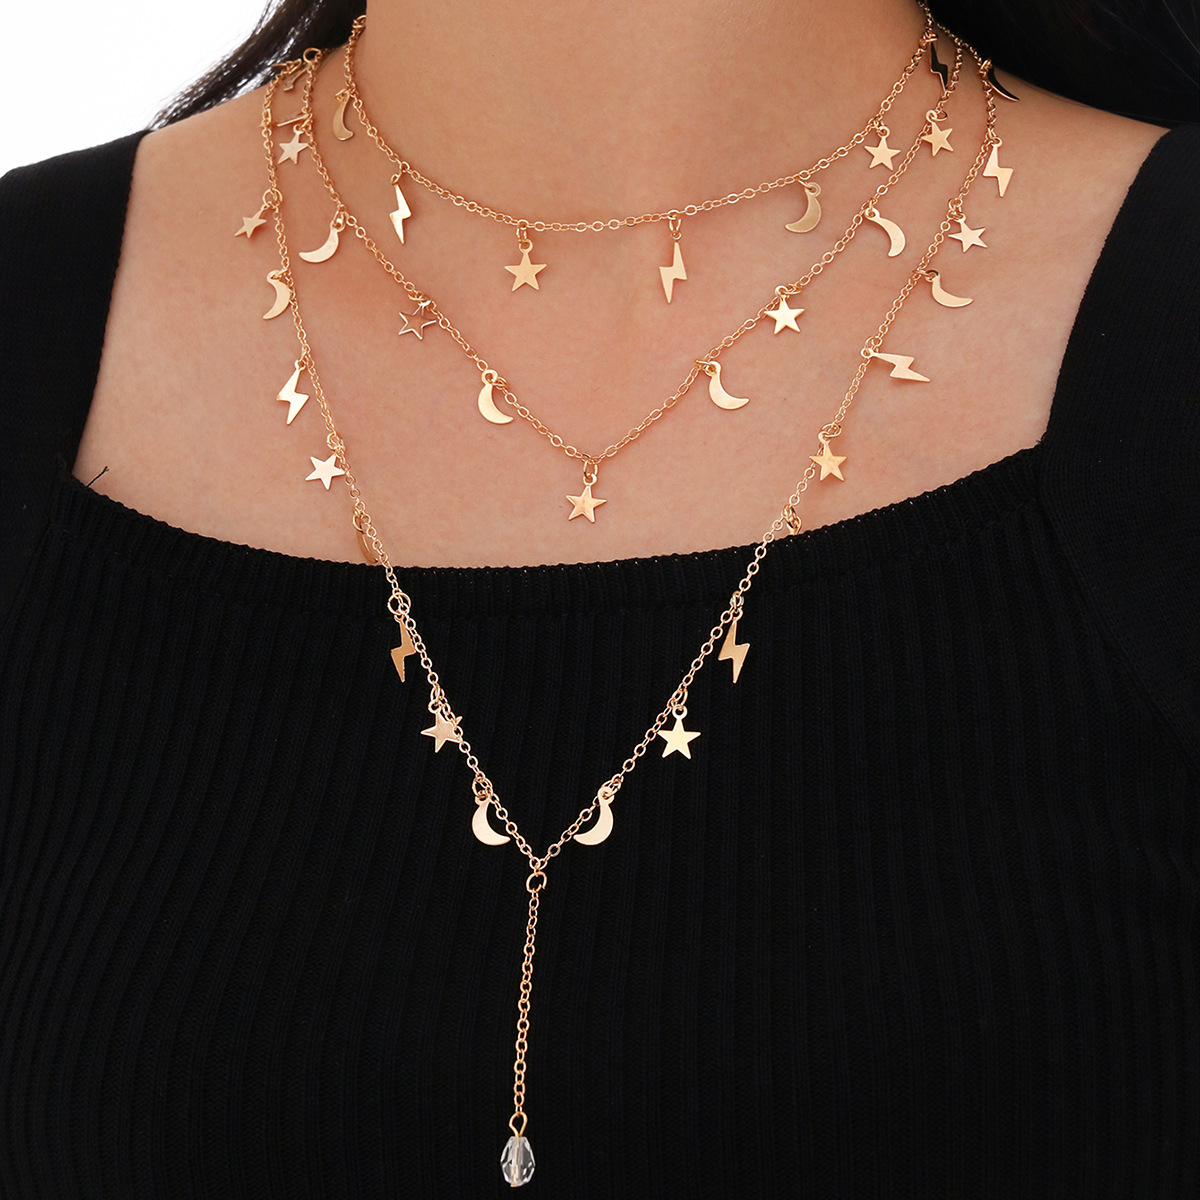 new multilayered fivepointed star moon Lightning pendant long tassel alloy necklace  NHPV249526